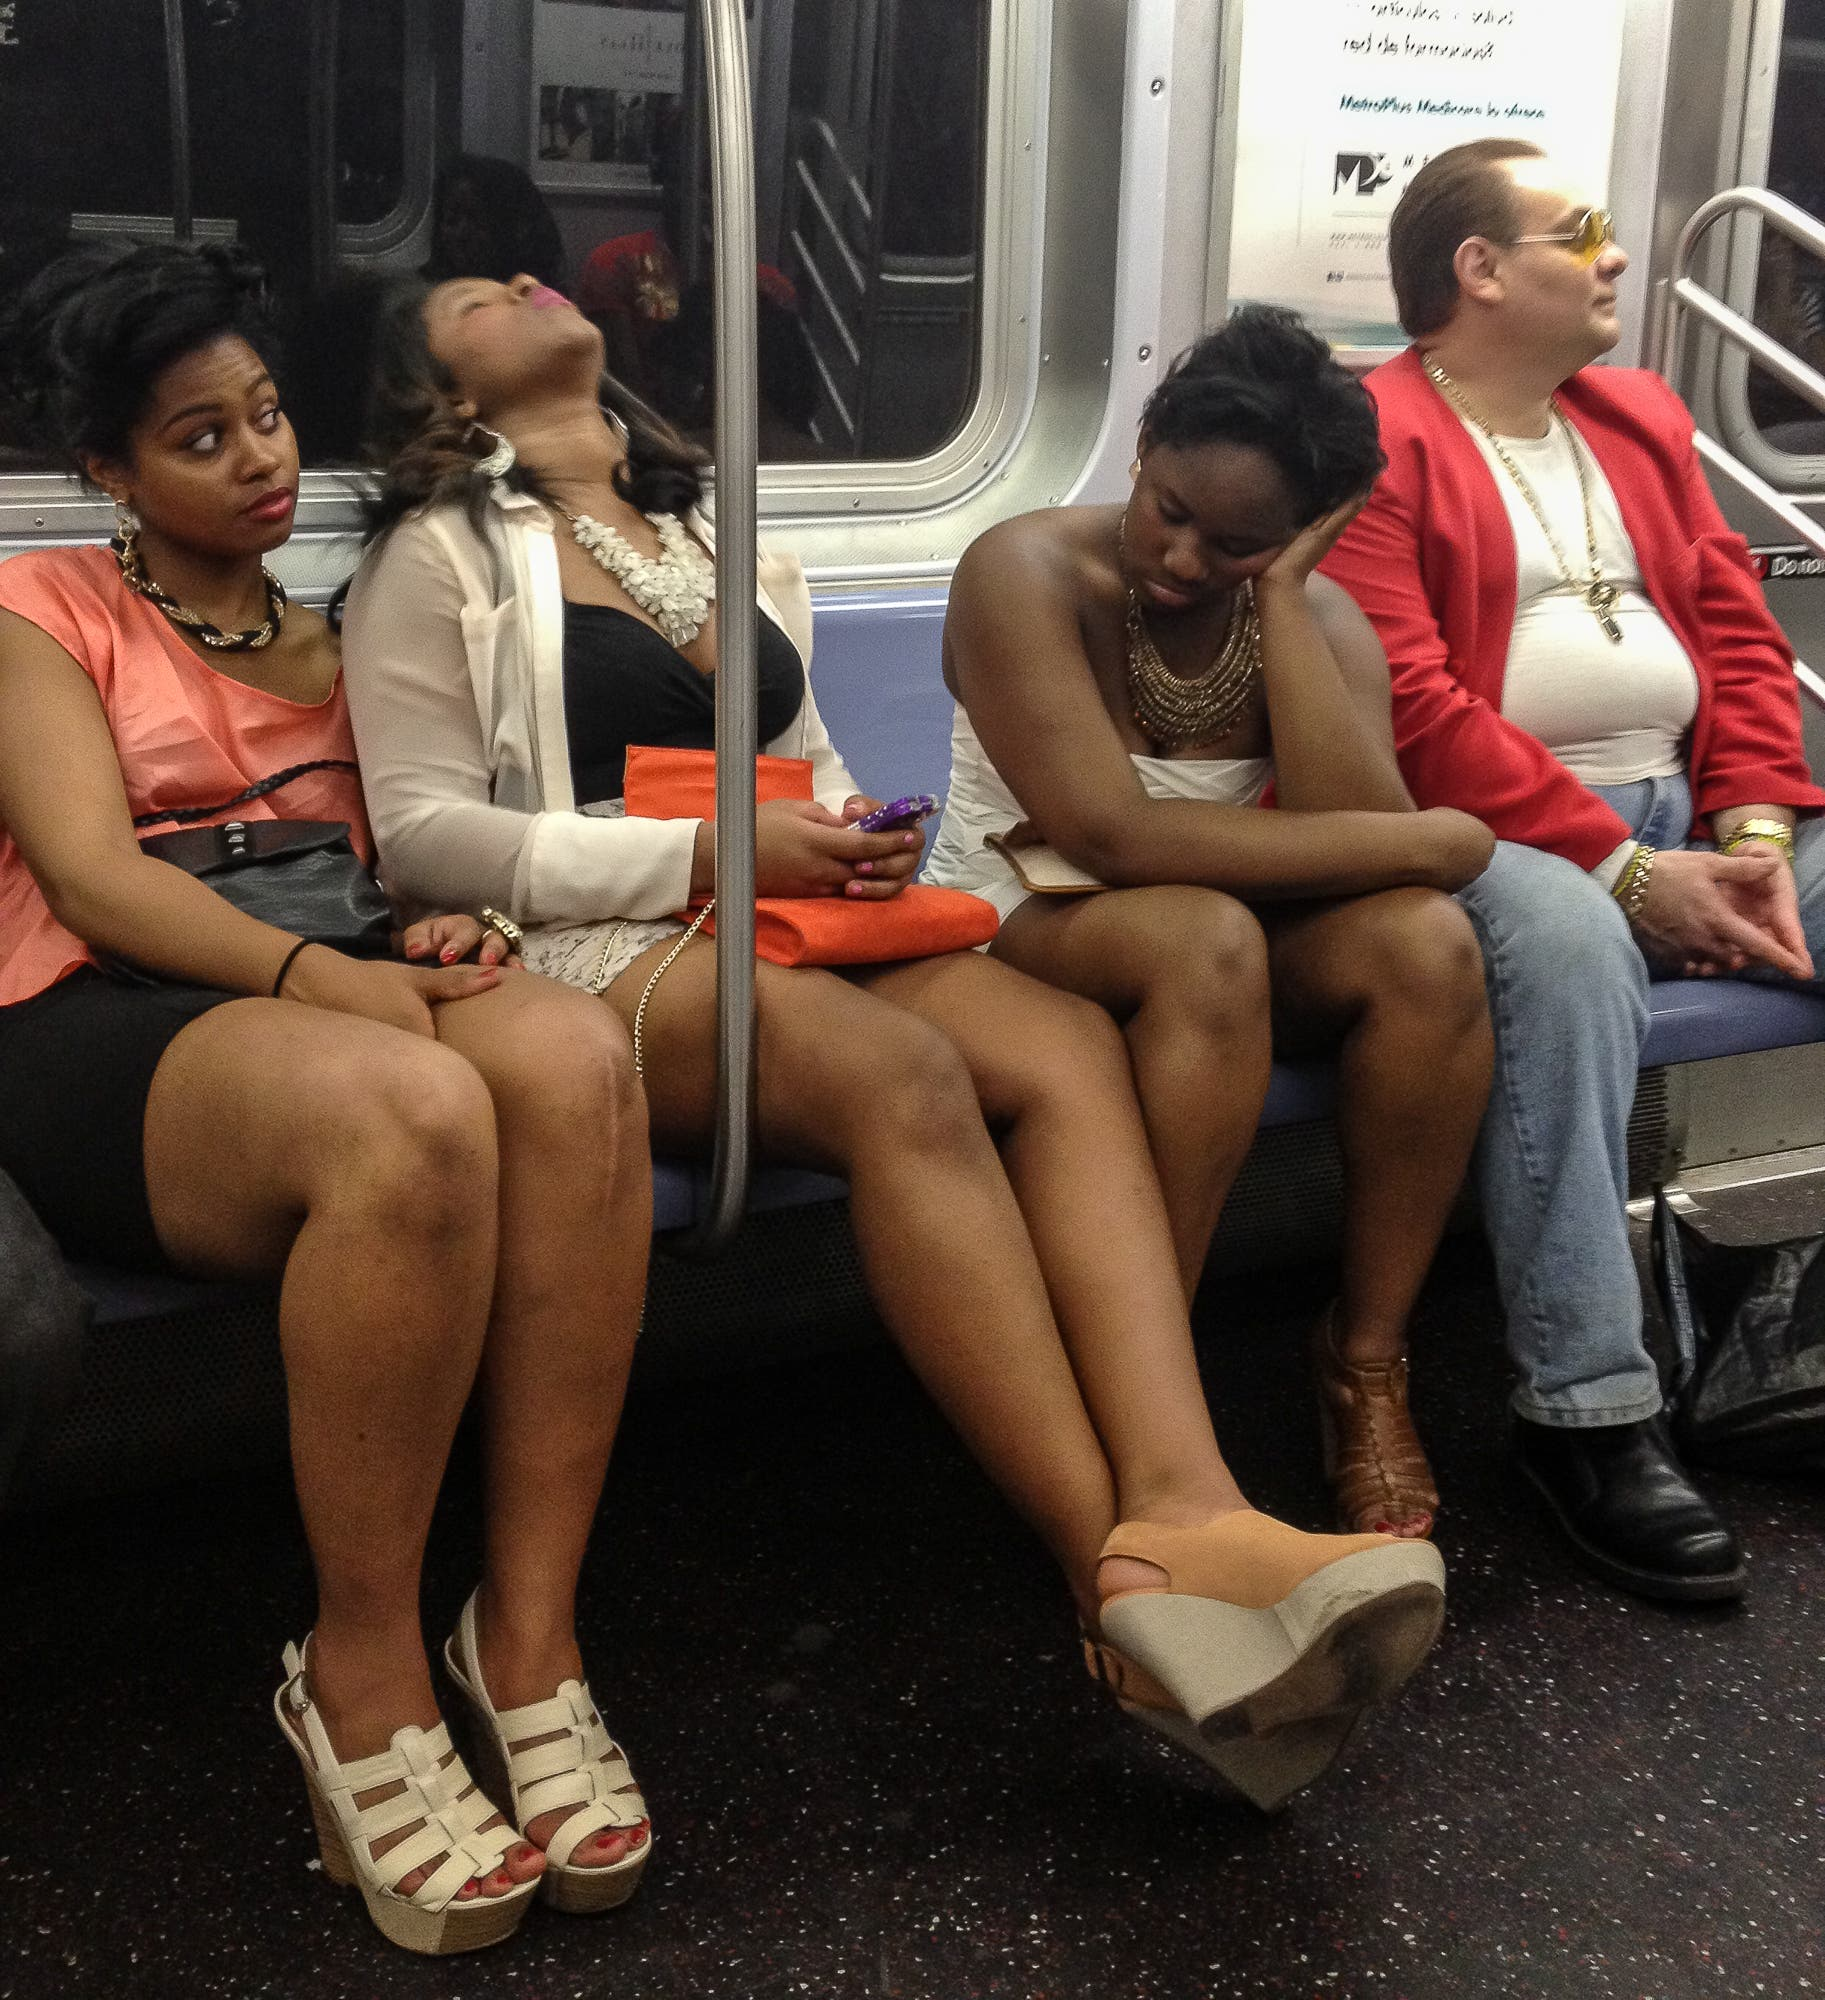 UNLIMITED METROCARD: Gretchen Robinette's Candid NYC subway Photographs